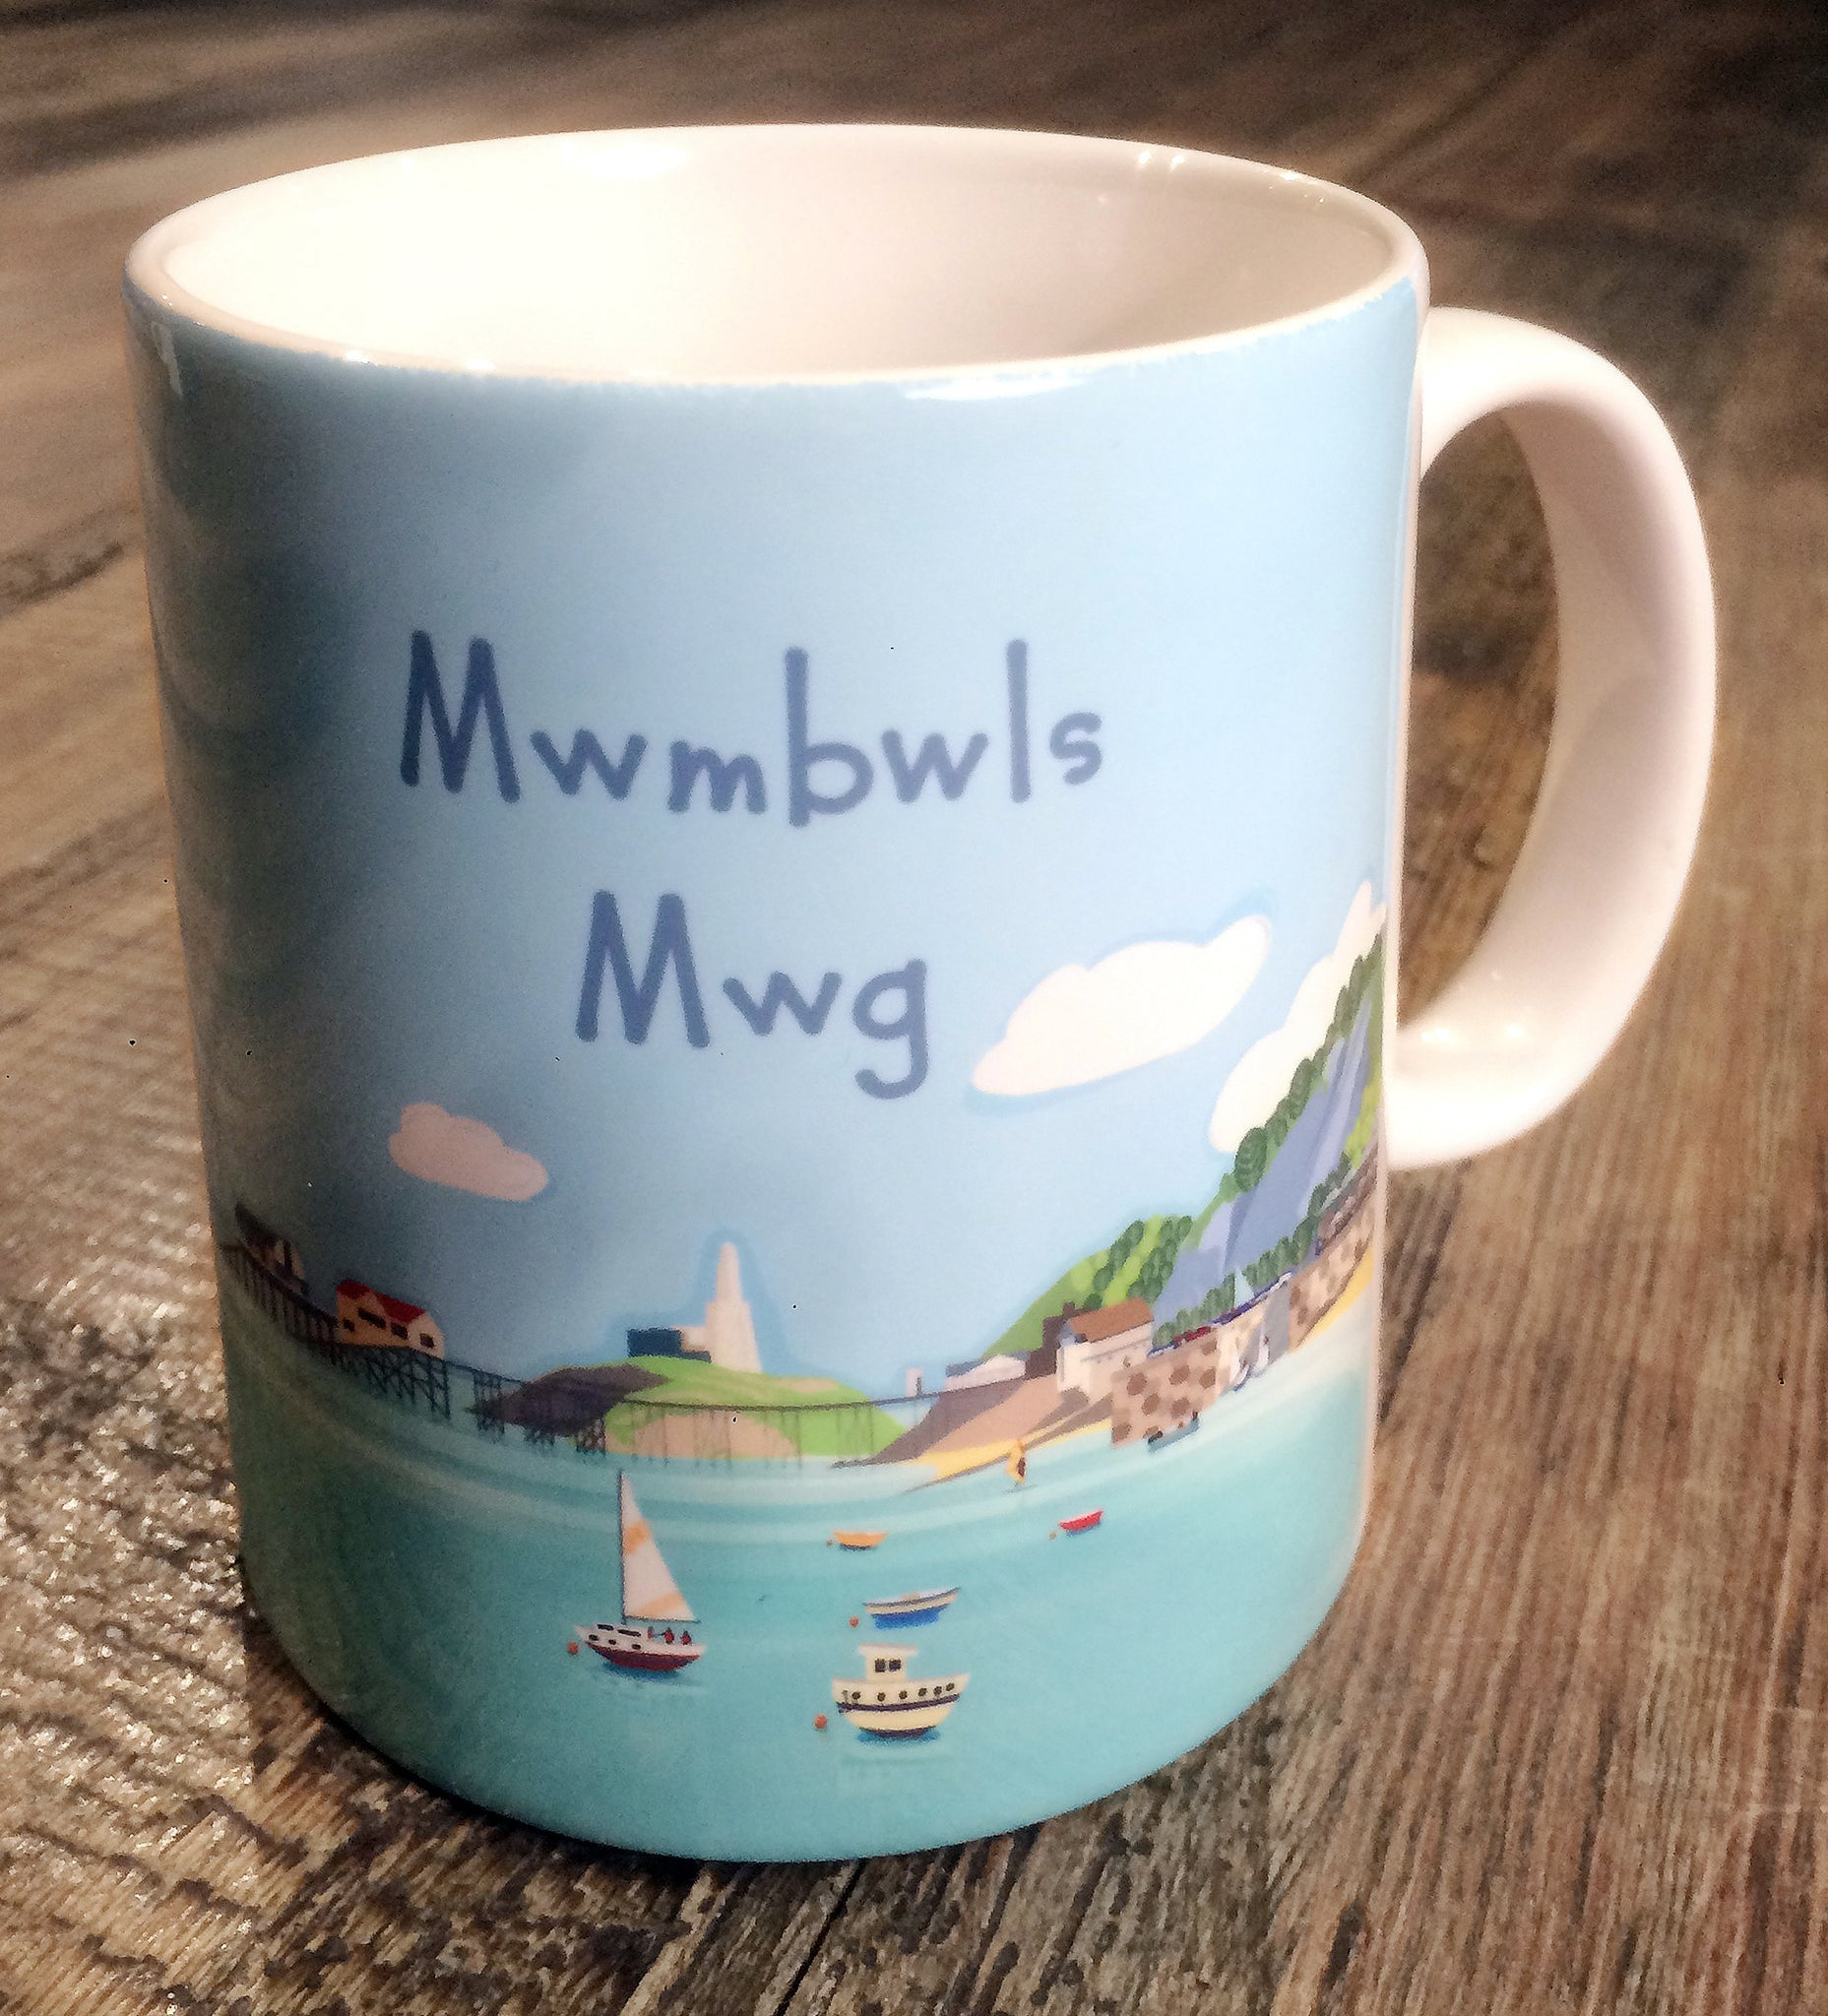 Mwg Mwmbwls sold on behalf of Noodle Design